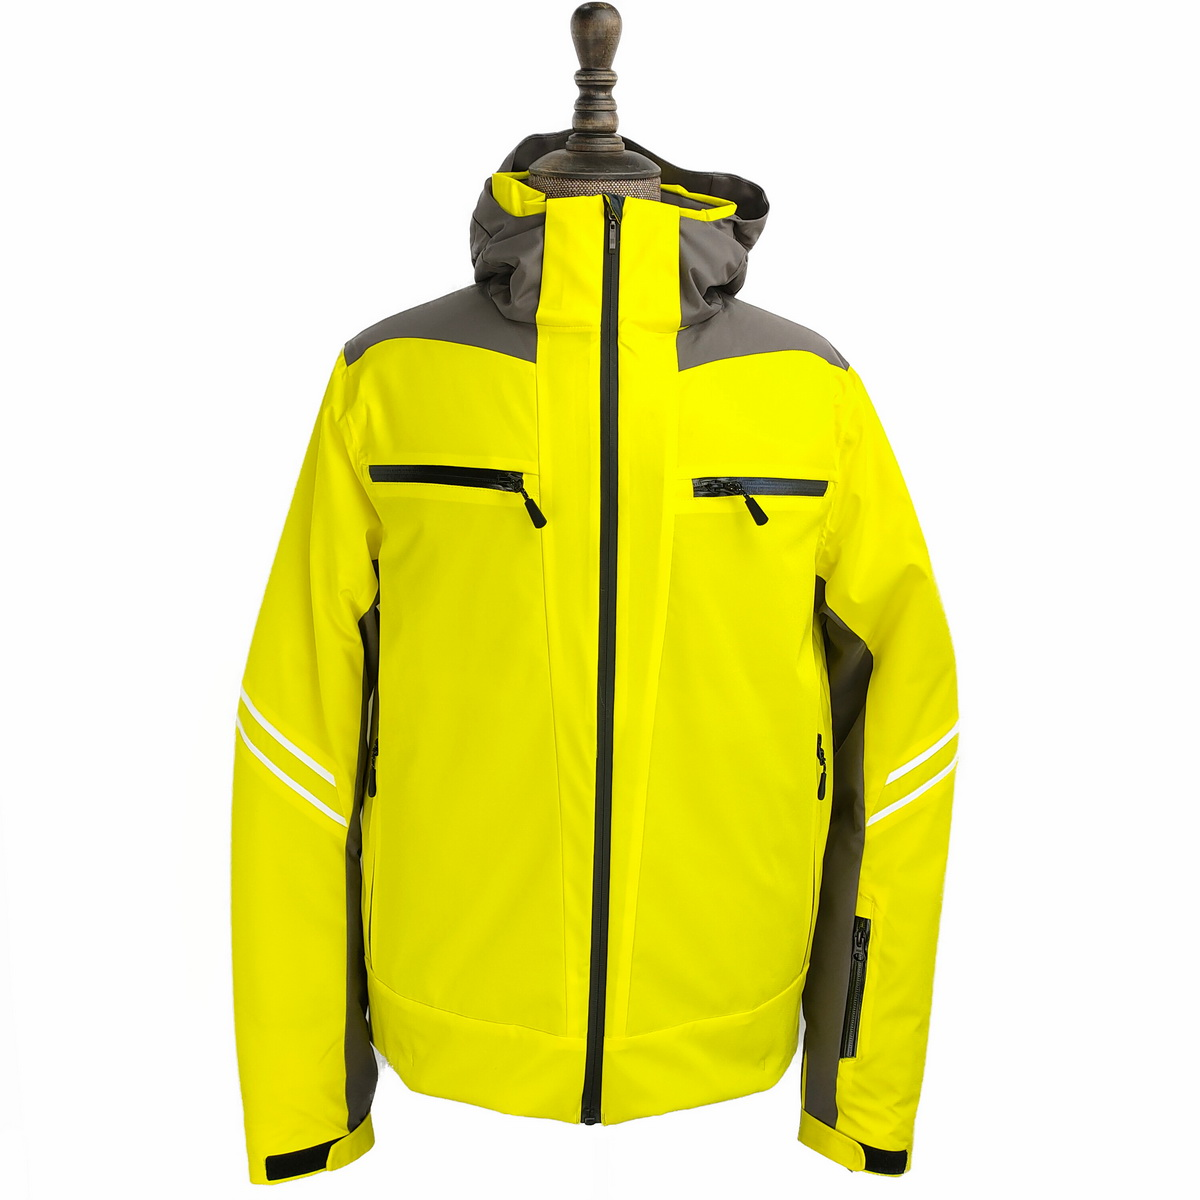 Adventure Men's Ski Jacket